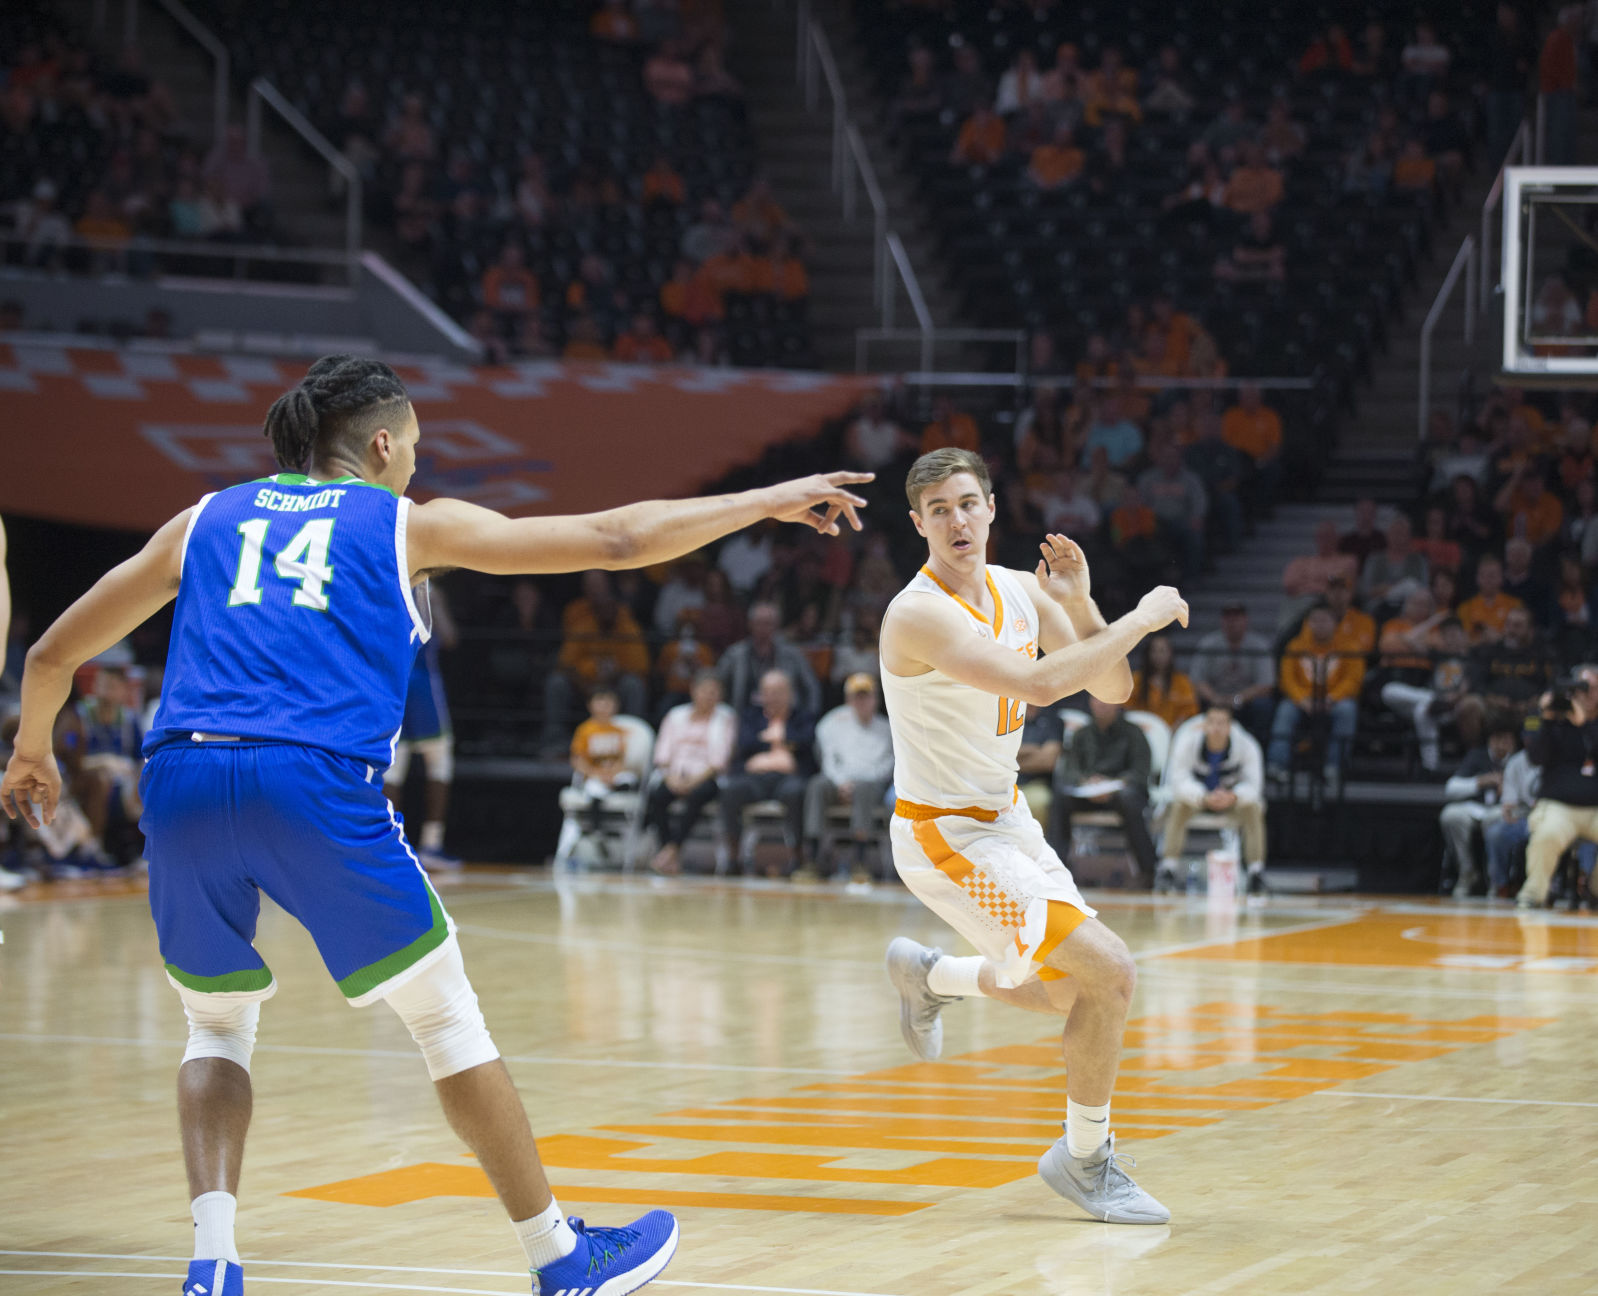 Seniors Campbell and Woodson excelling in walk-on role